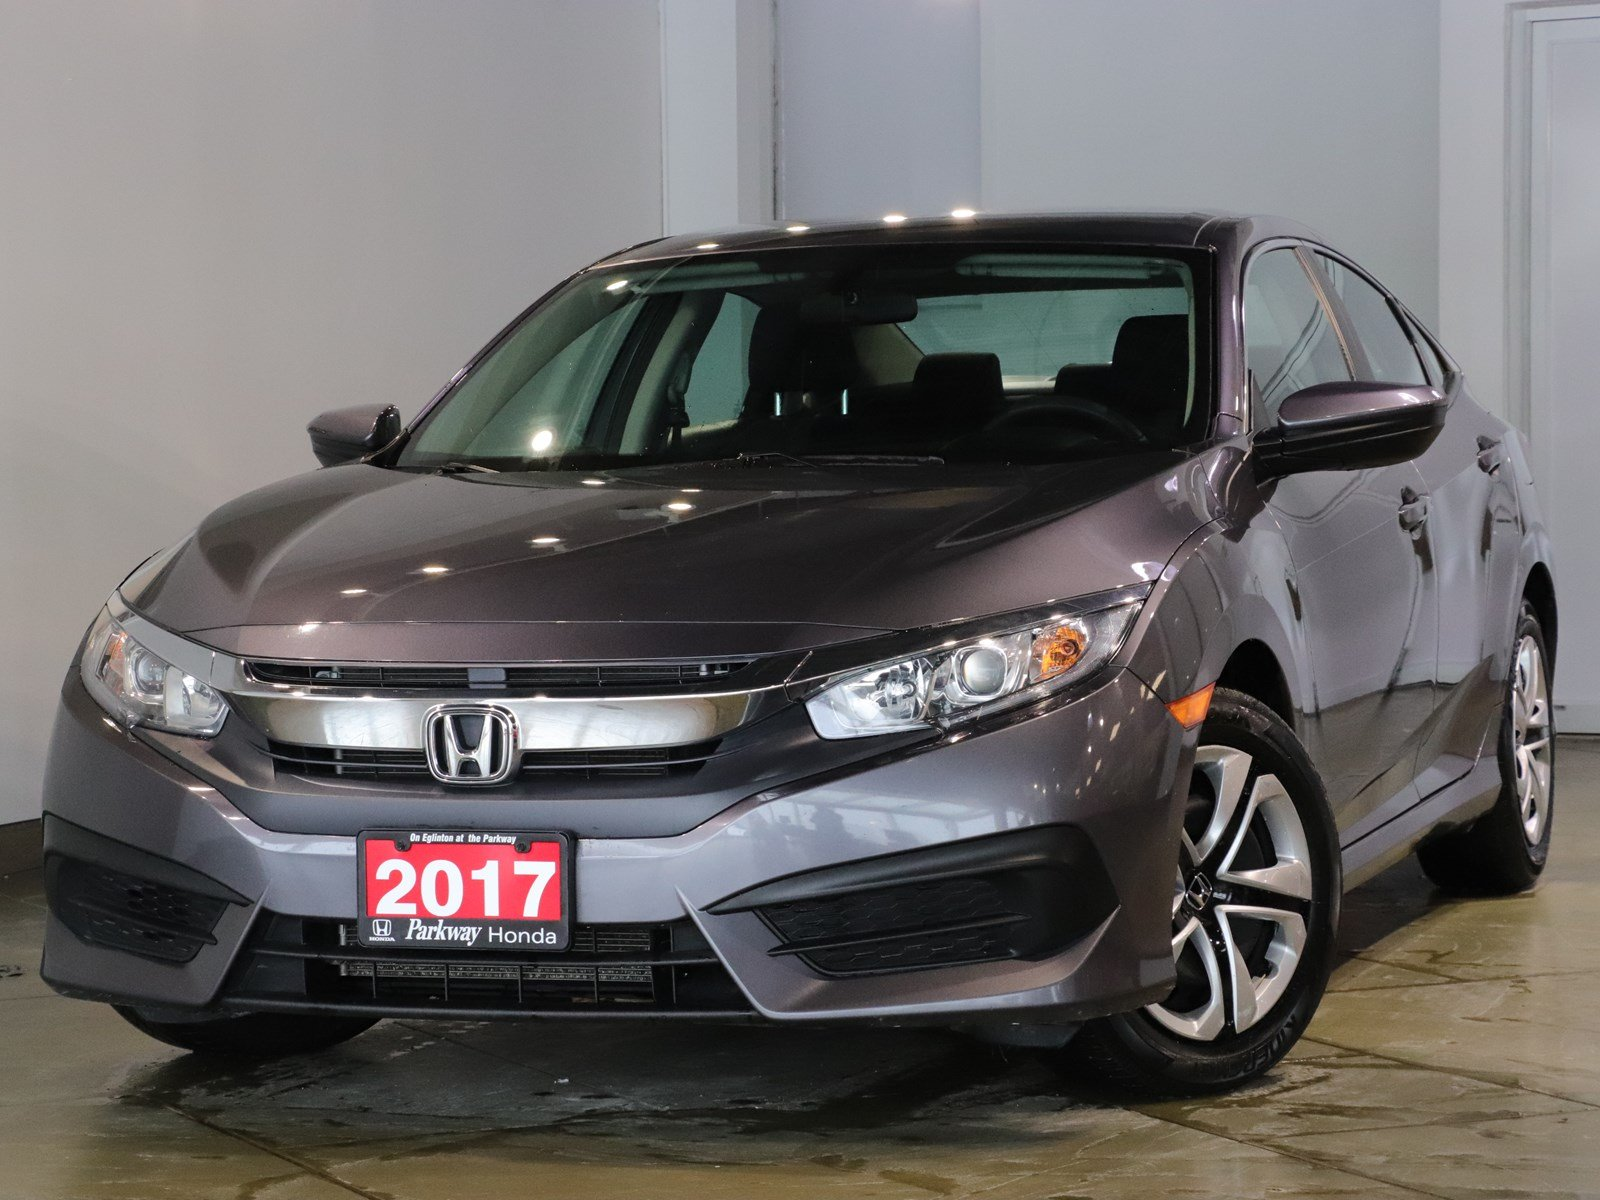 Pre-Owned 2017 Honda Civic Sedan LX - FUEL EFFICIENT & COMFORTABLE